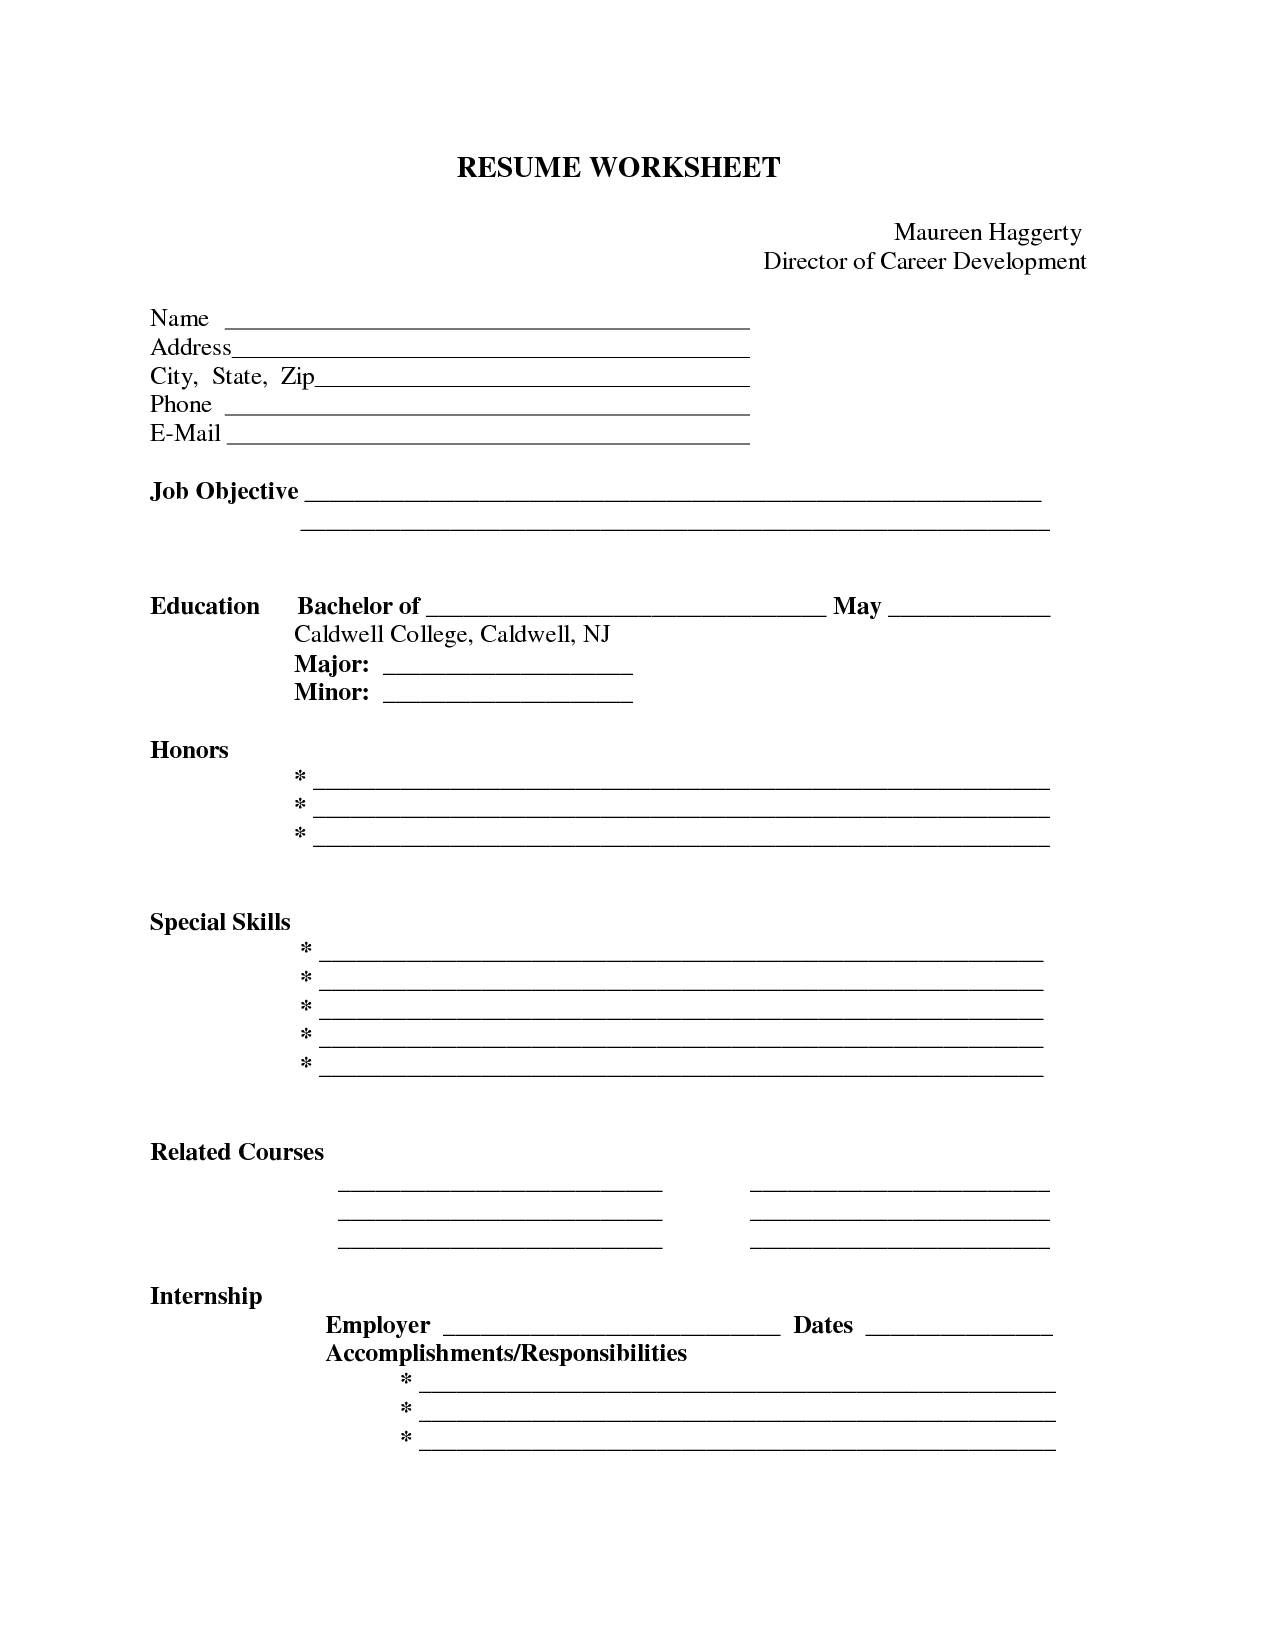 Pin Oleh Jobresume Di Resume Career Termplate Free | Resume Form - Free Printable Blank Resume